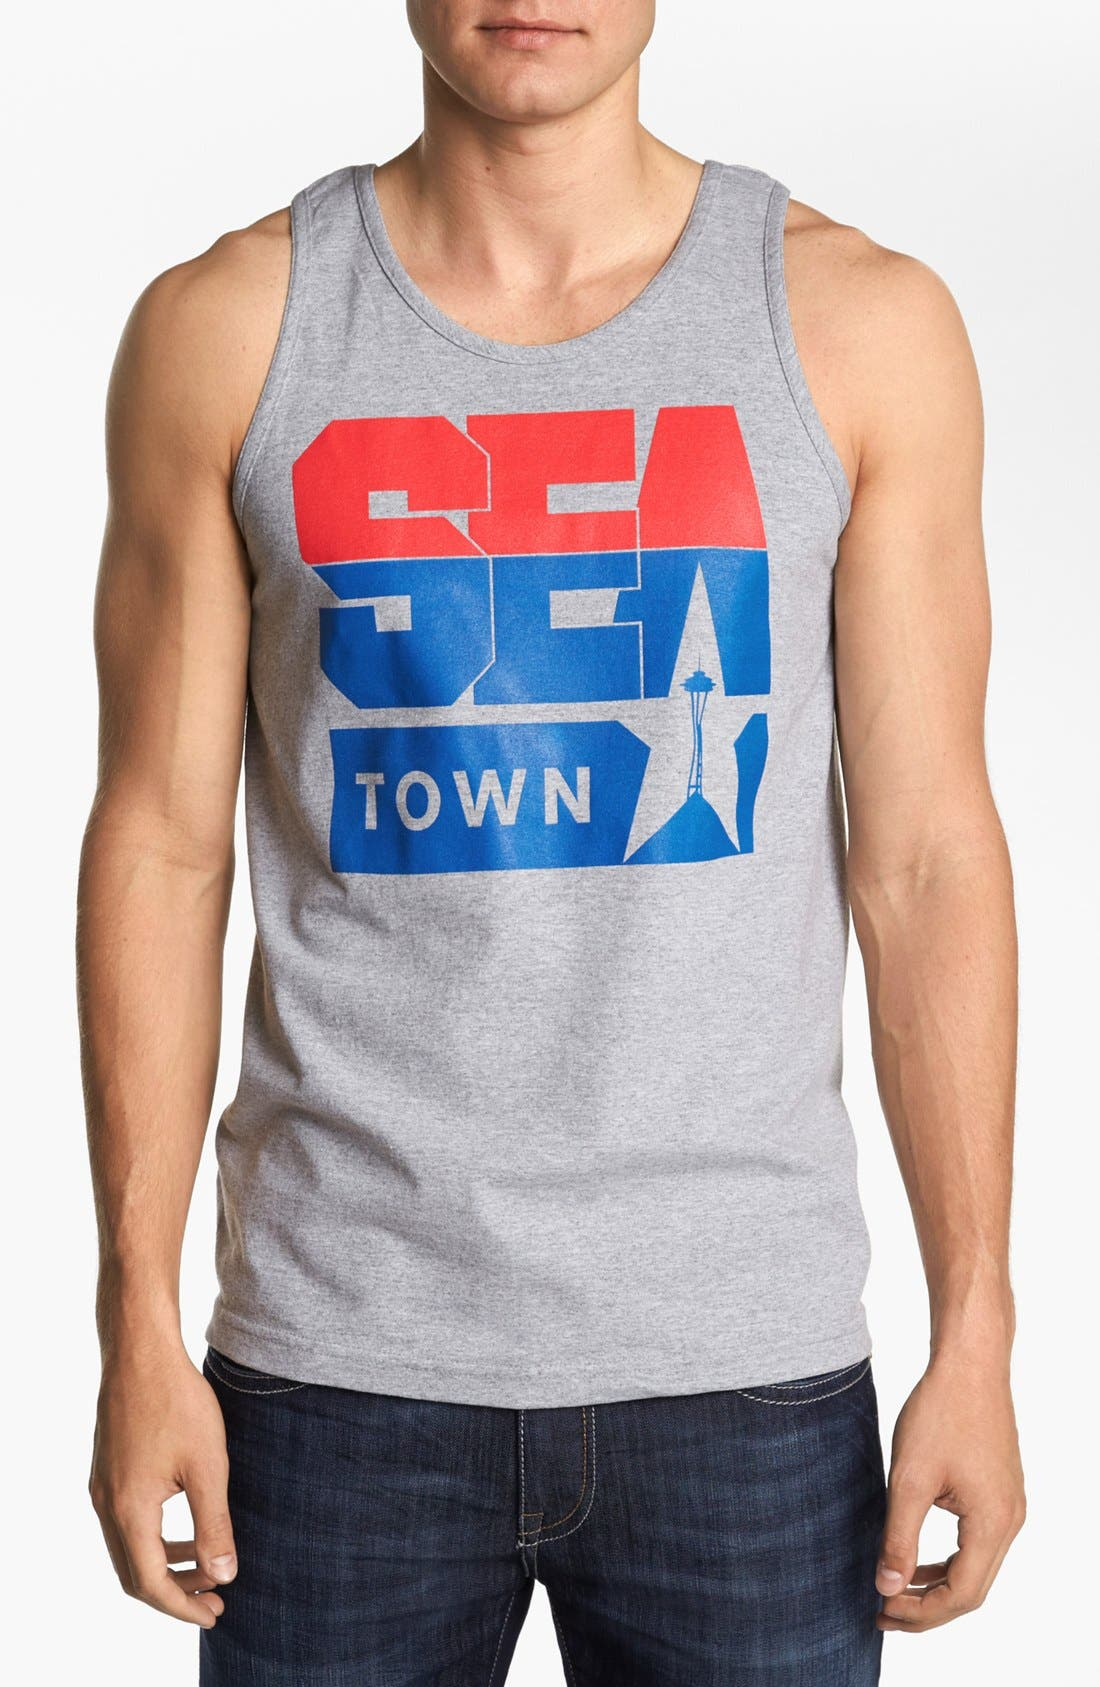 Alternate Image 1 Selected - Casual Industrees 'Seatown' Tank Top